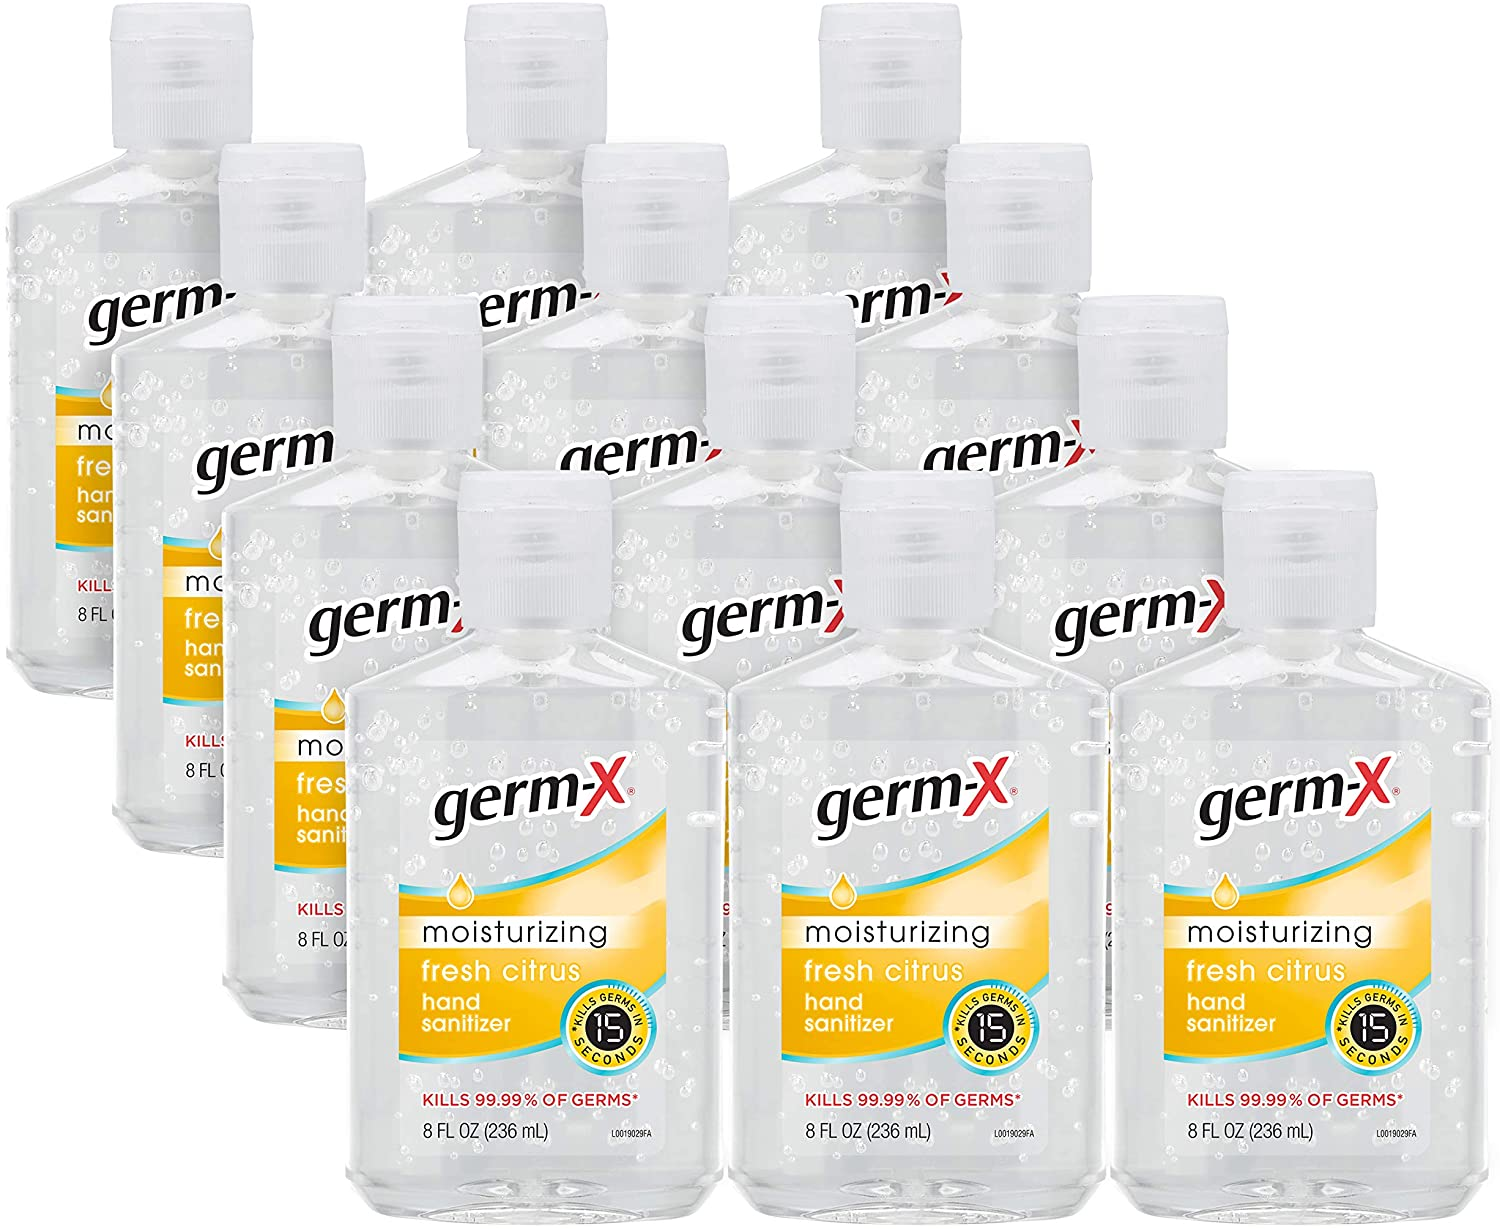 Amazon: Germ-X Original Hand Sanitizer (12-pack of 8 oz) for .